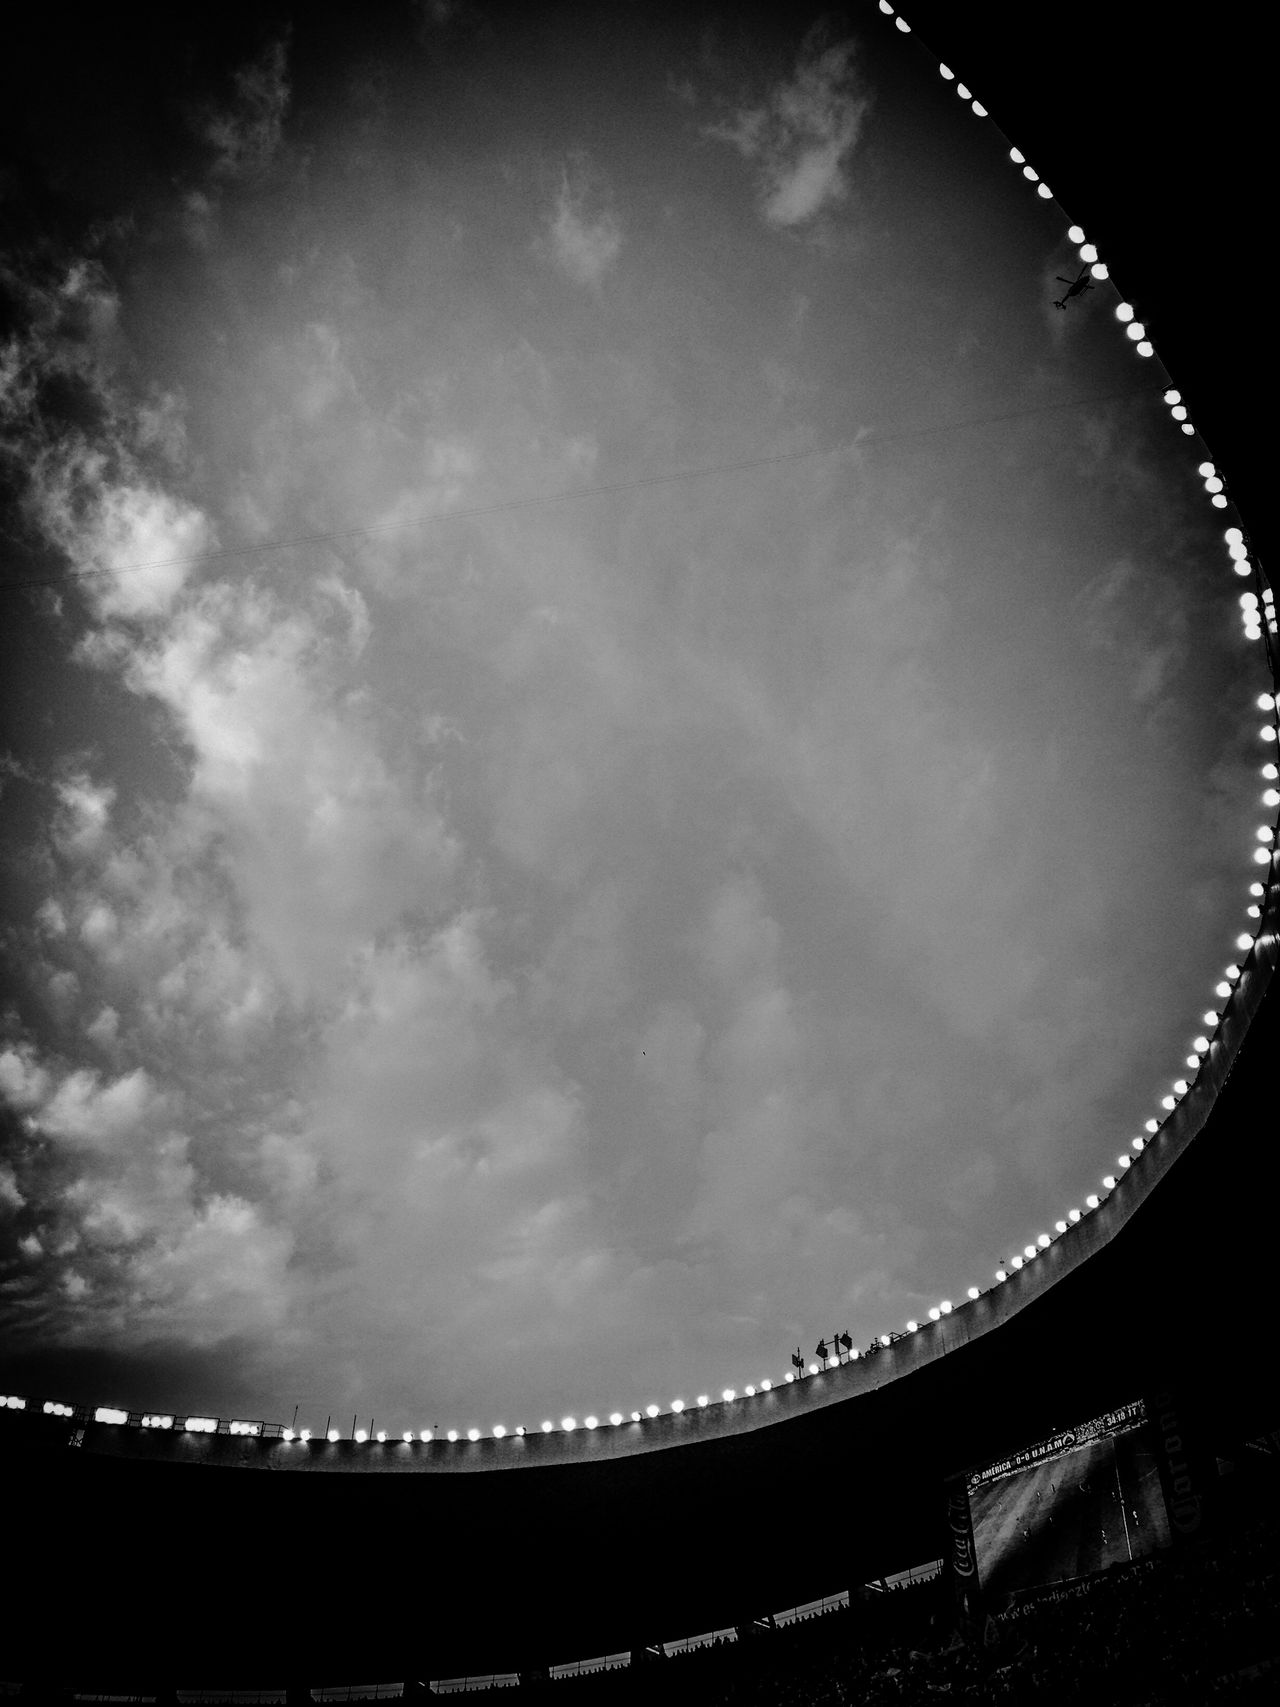 Soccer⚽ Eyeemphotography EyeEm Best Shots Soccer Game Mexico Estadioazteca Futebol Football Stadium Blackandwhite EyeEmBestPics